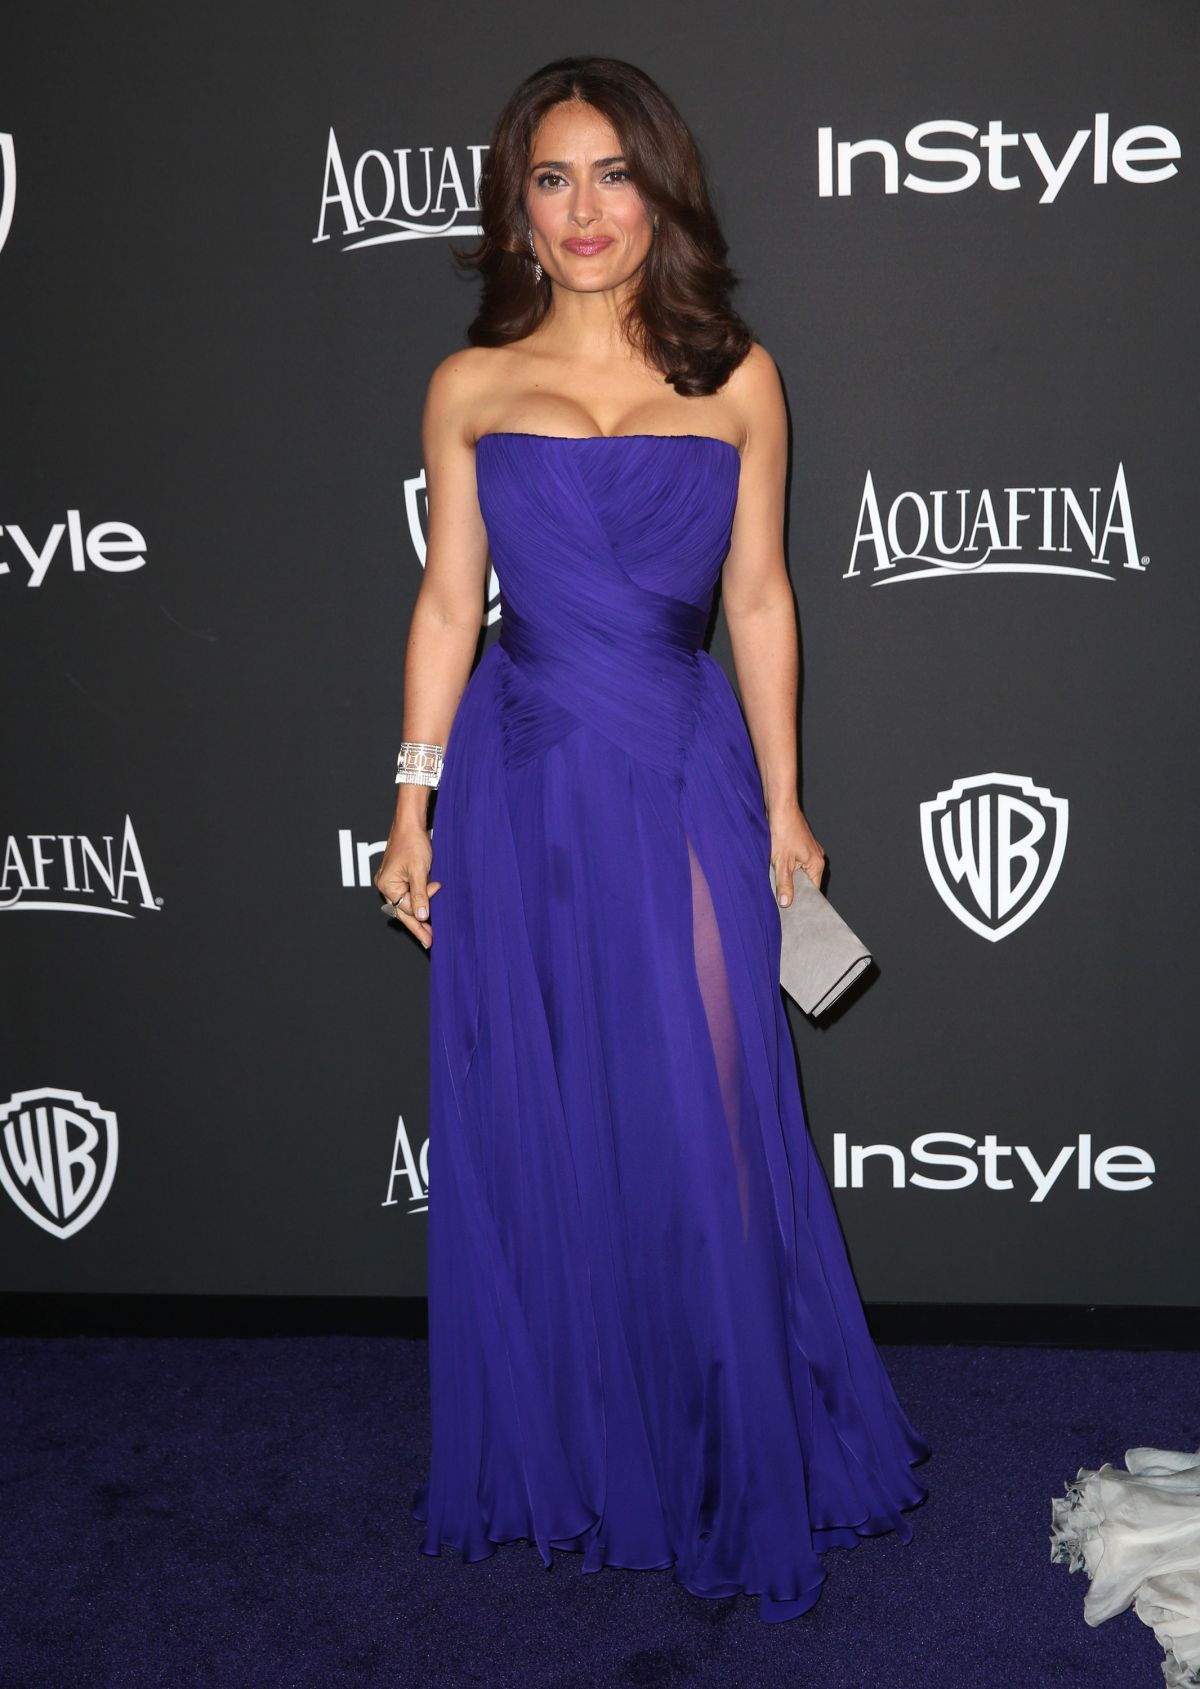 SALMA HAYEK at Instyle and Warner Bros Golden Globes Party in Beverly Hills